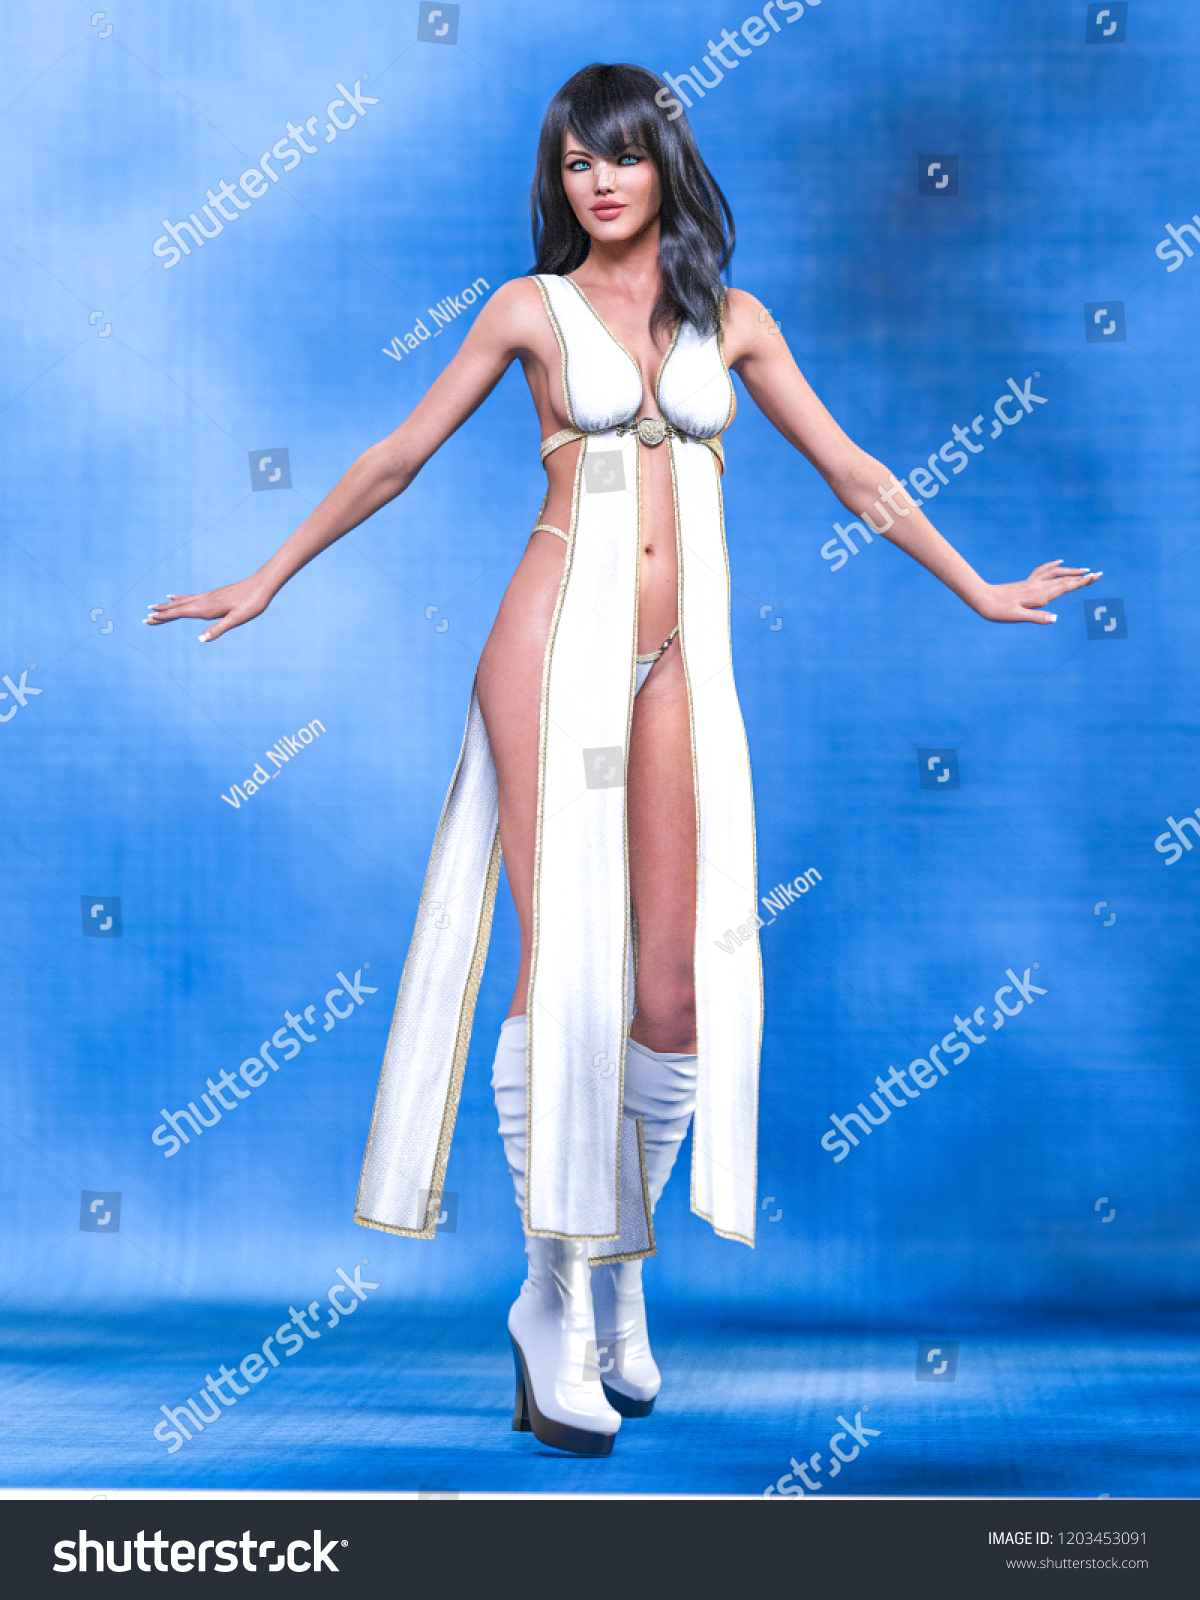 Tall sexy woman in minimalist extravagant sexy dress. Conceptual fashion  art. Seductive candid pose